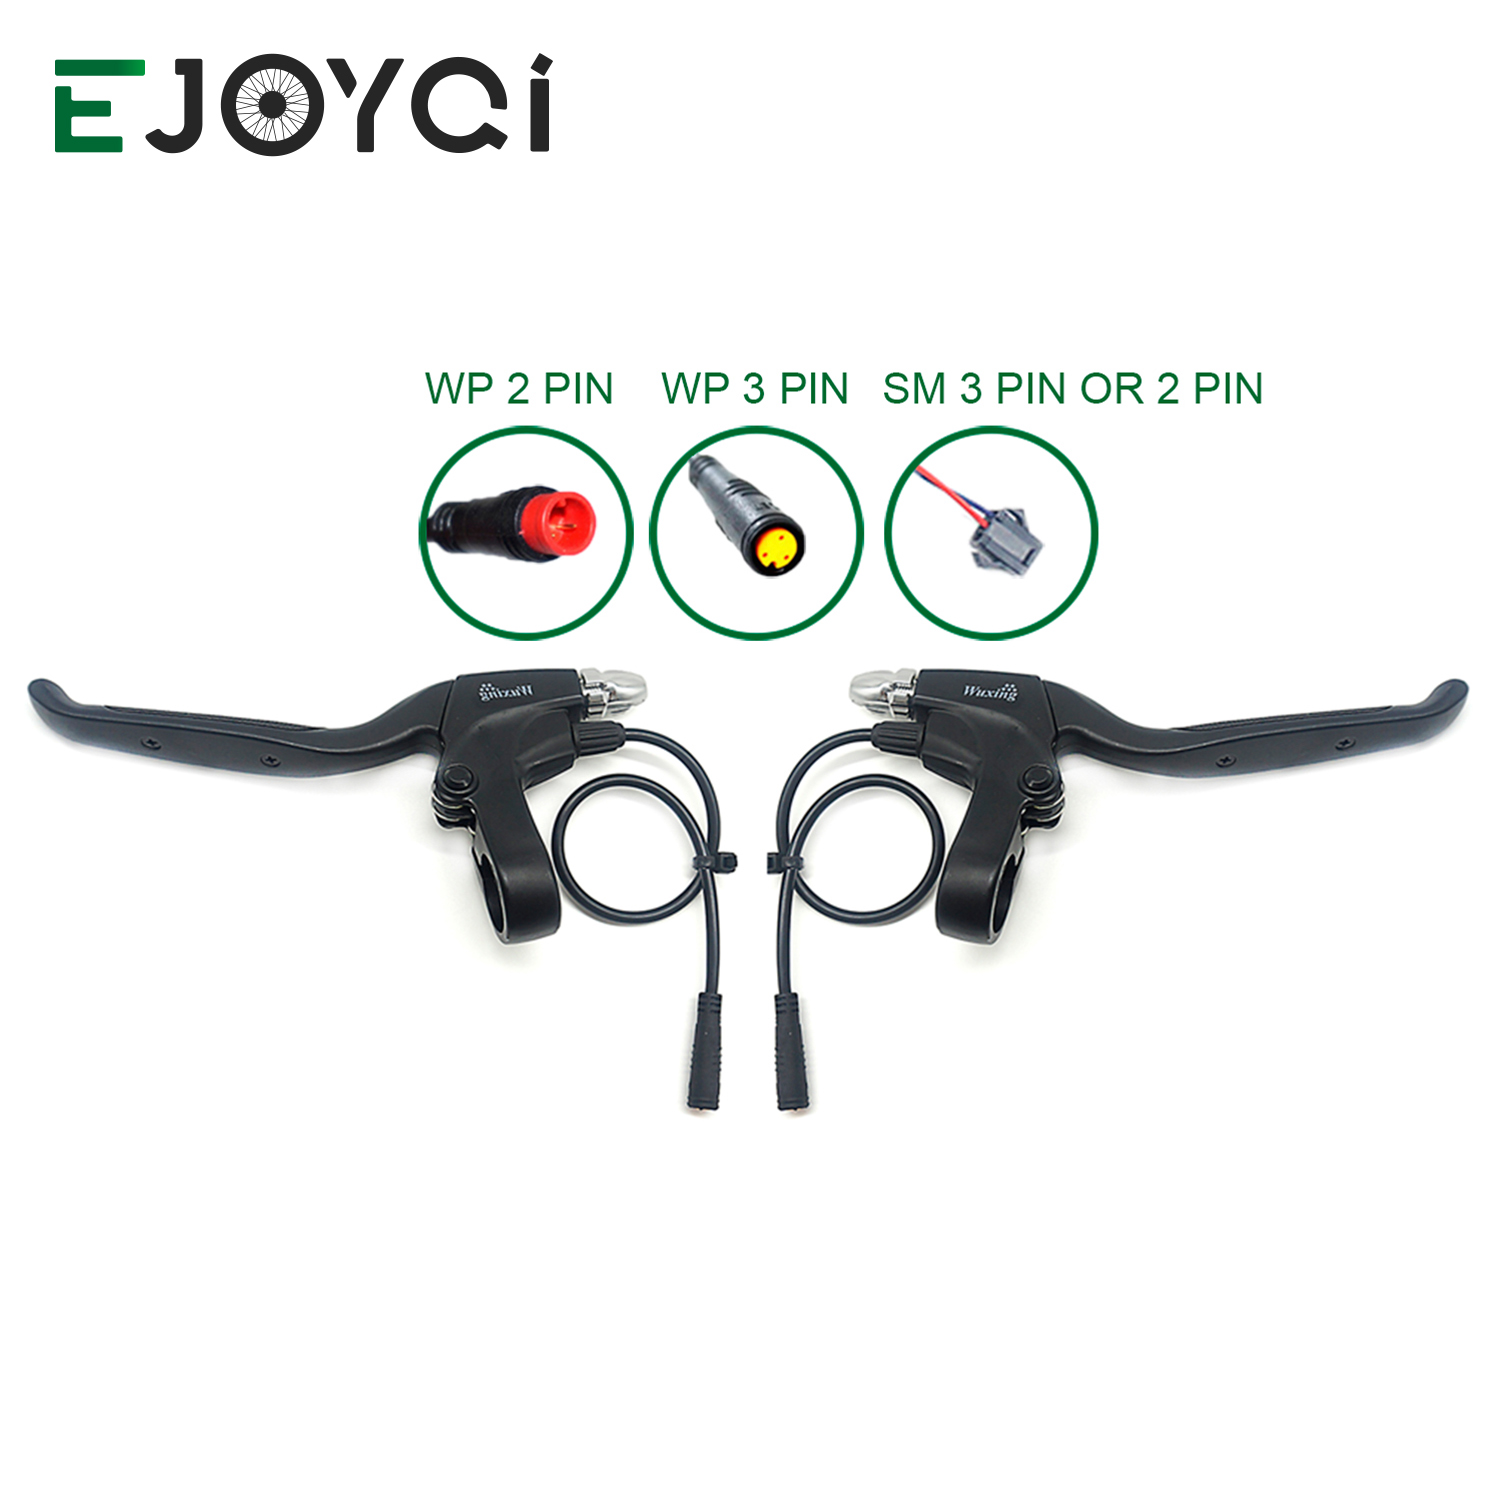 EJOYQI 115PDD FIVE STAR  Electric Brake Lever For Electric Bicycle E-scooter Bicycle Cut Off Power Brake MTB Road Bike E-Brake